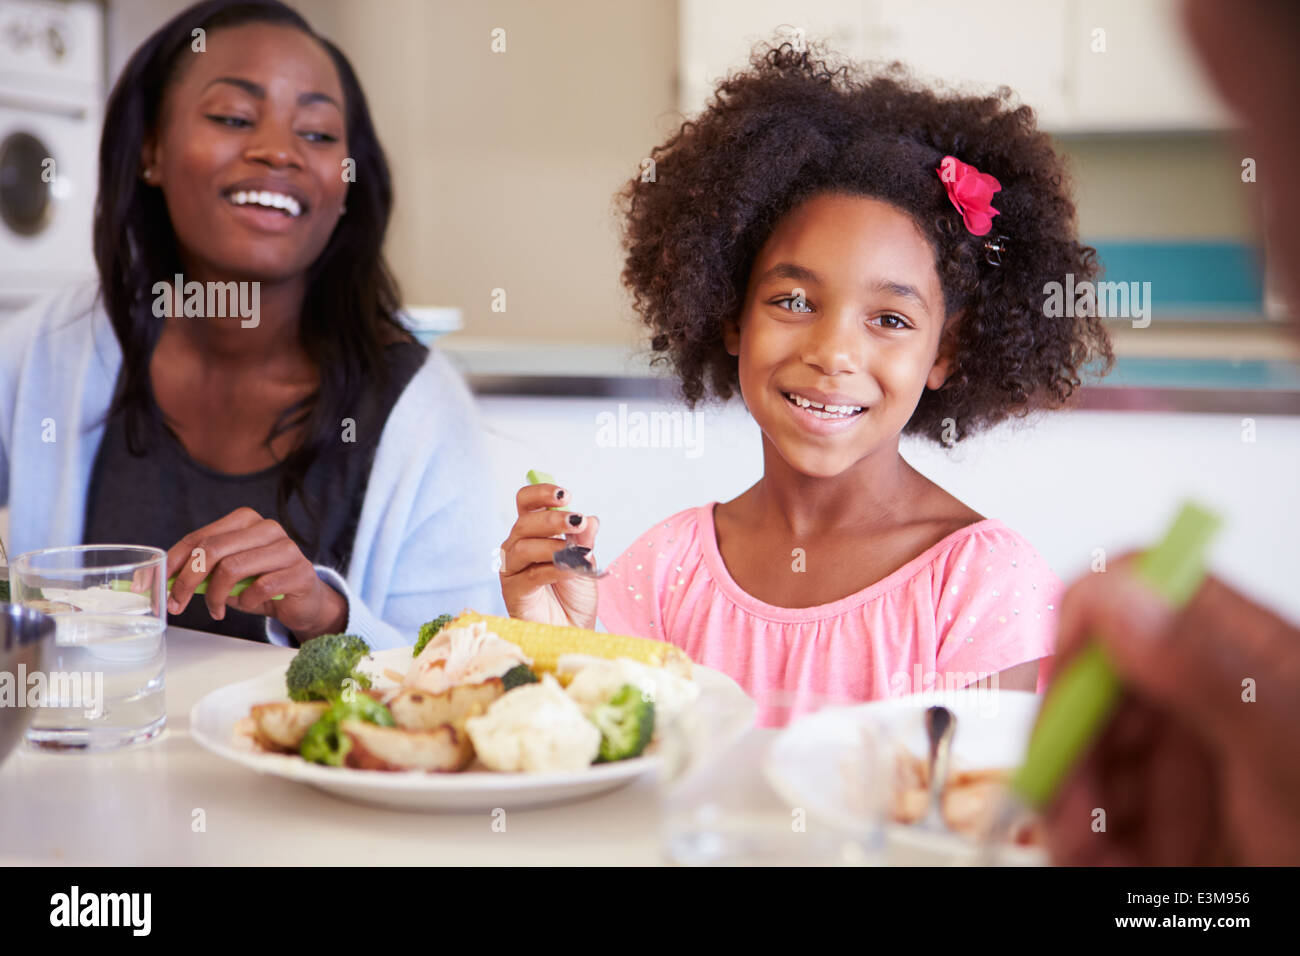 Mother And Daughter Having Family Meal At Table - Stock Image